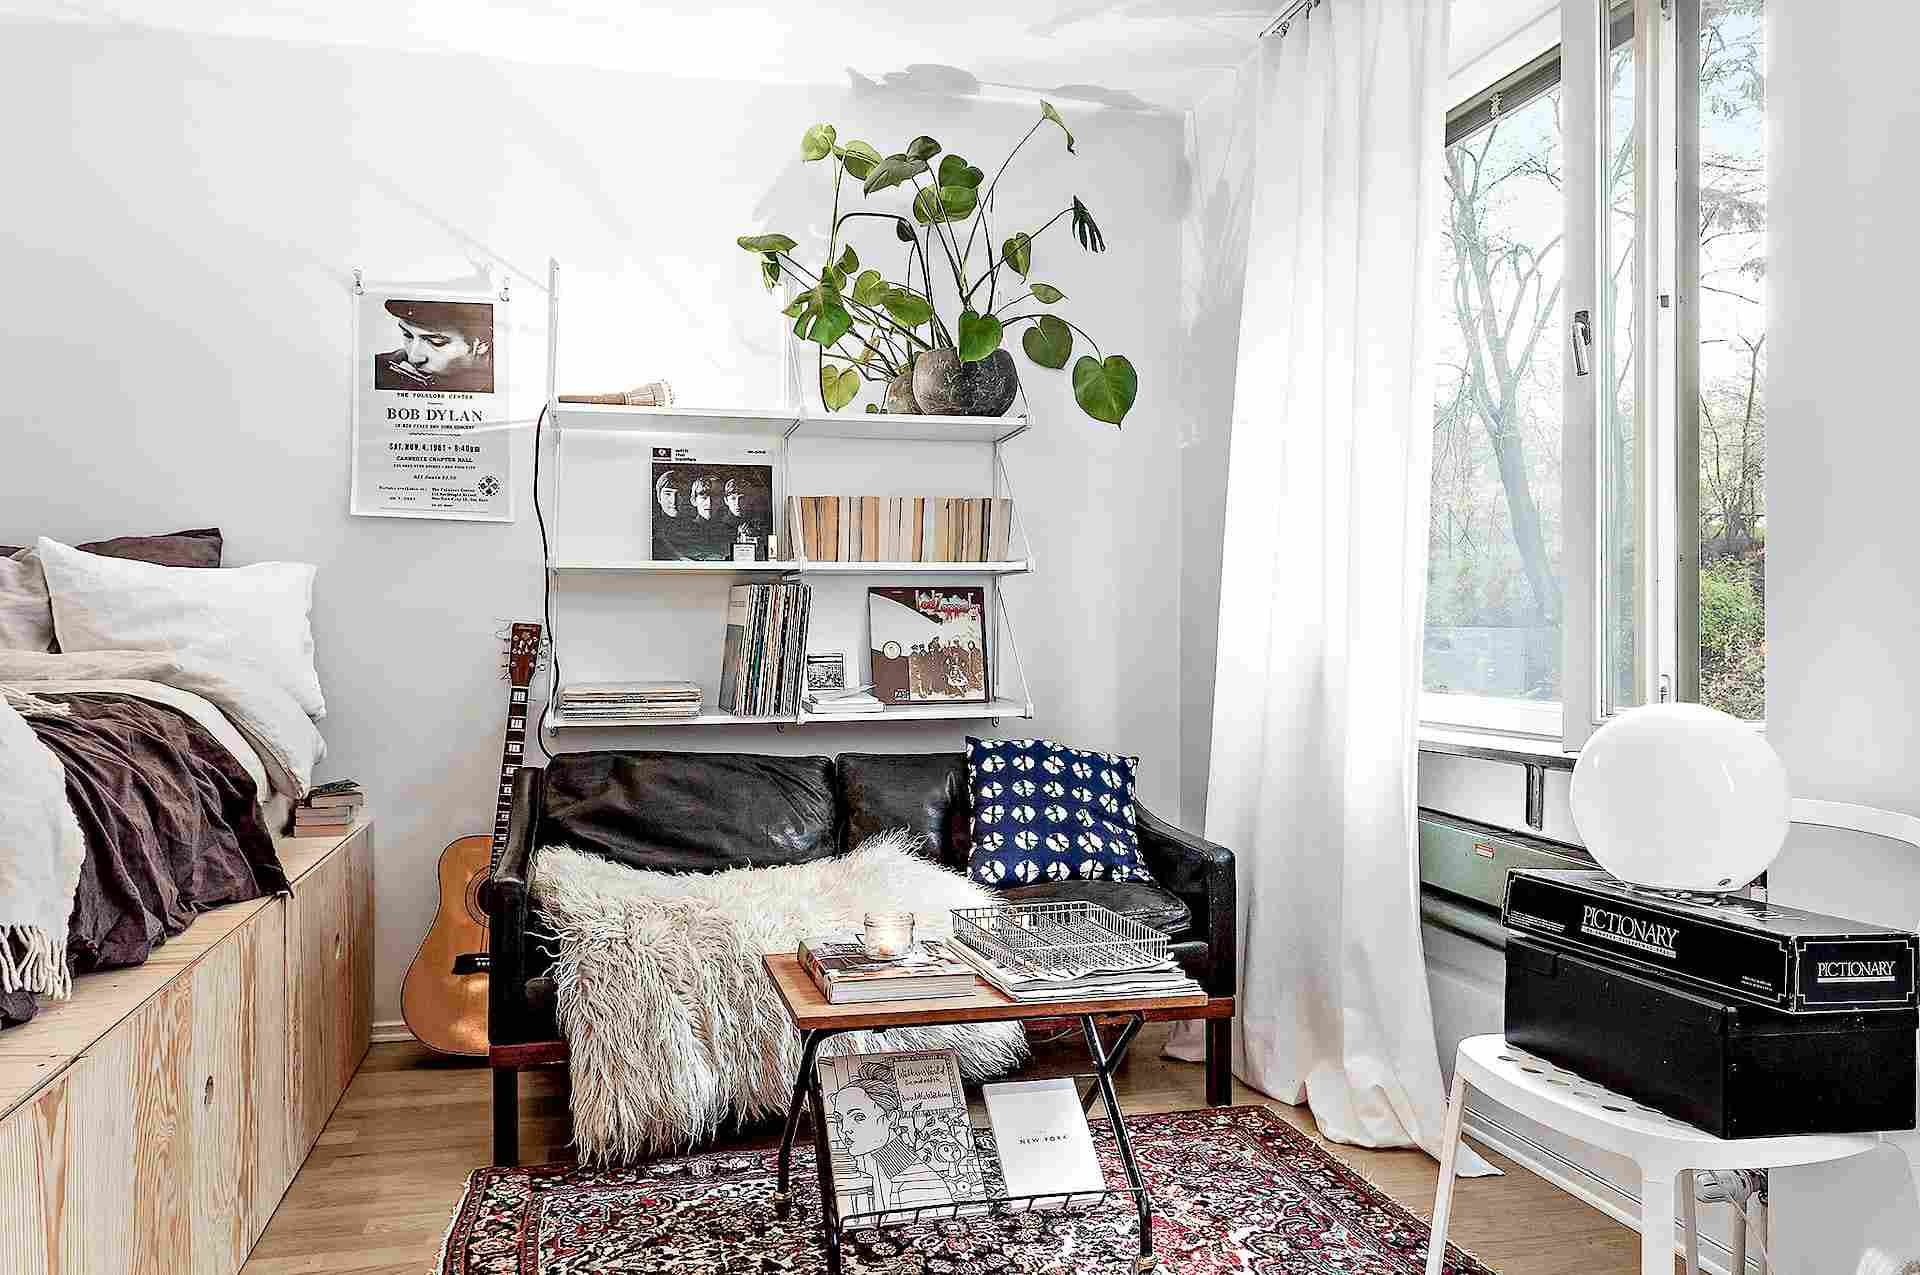 living room bed sofa and 2 chairs 25 ways to create a bedroom in studio apartment